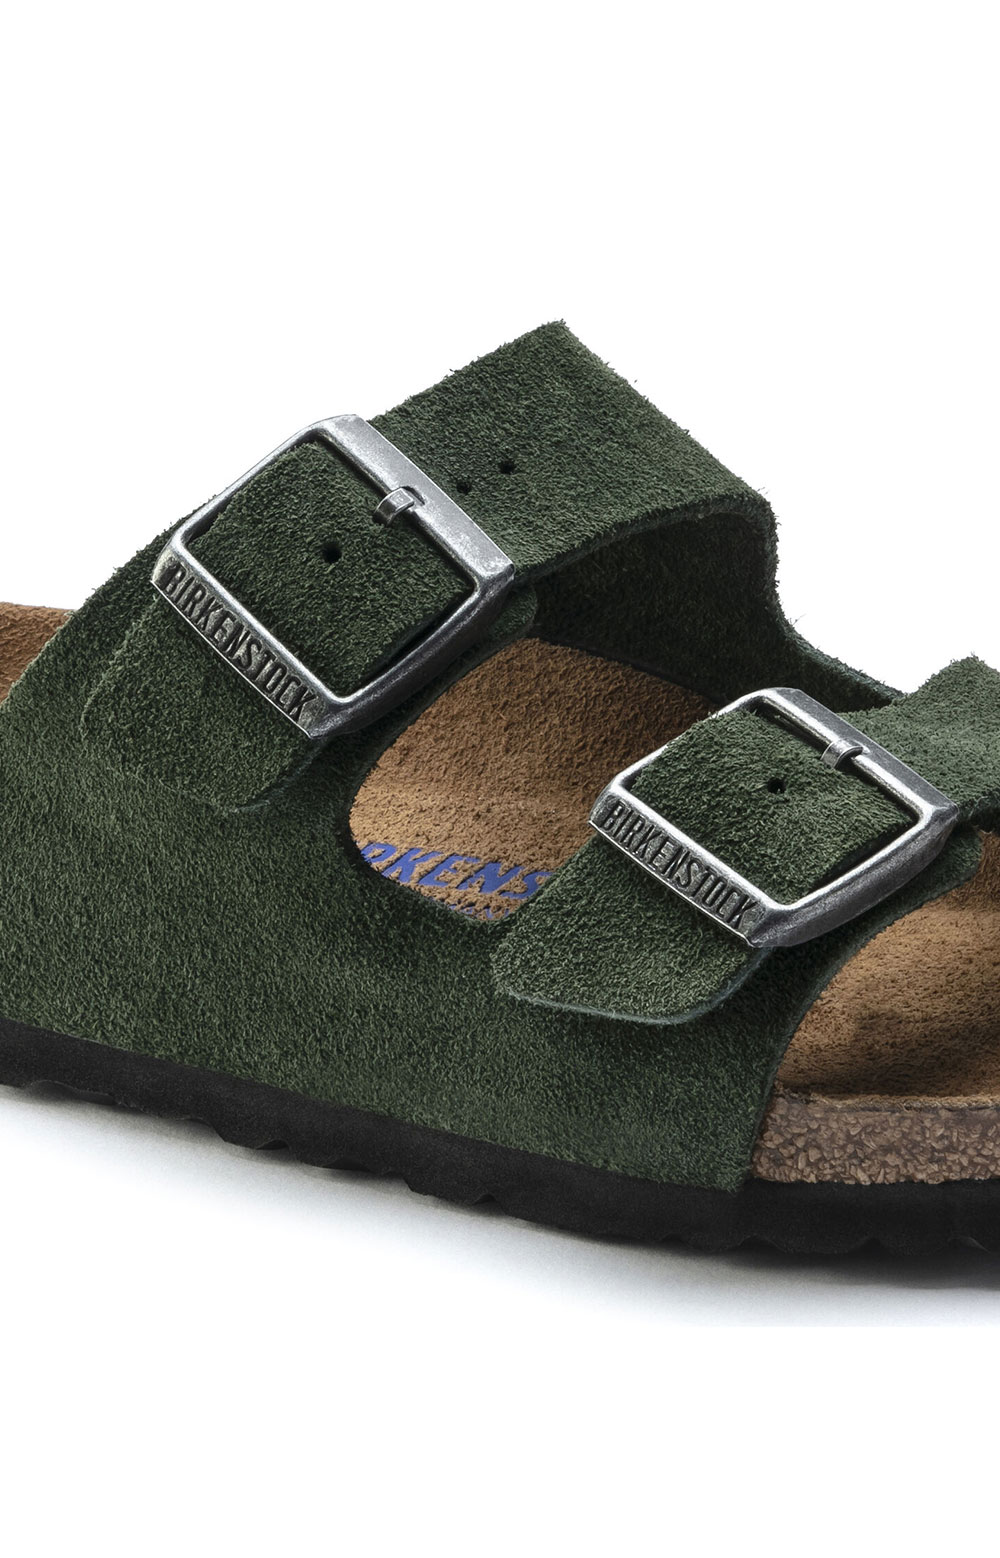 (1018143) Arizona Soft Footbed Sandals - Mountain View Green  3